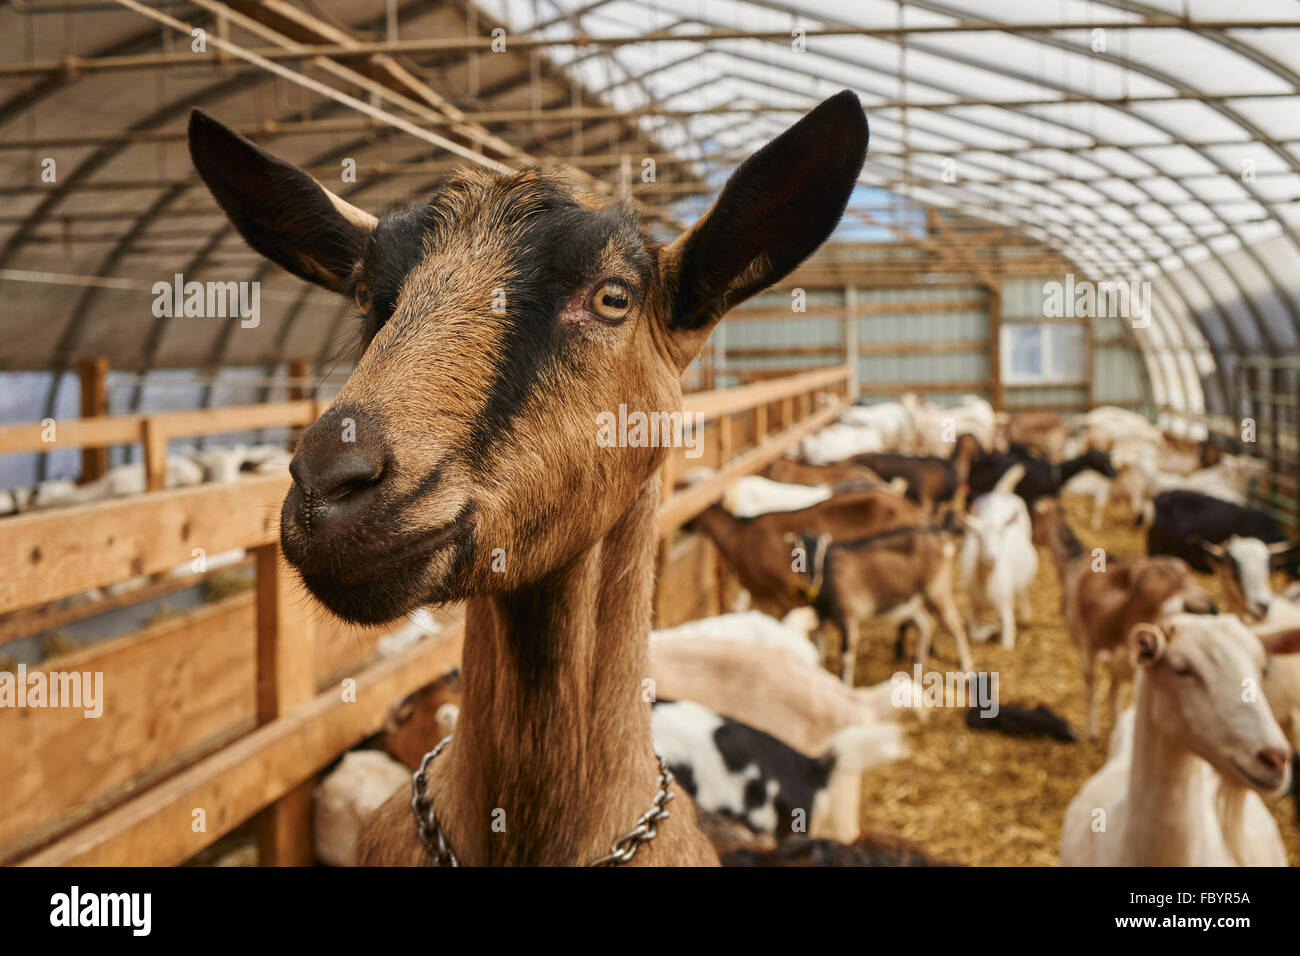 goats at Misty Creek Dairy in Leola, Lancaster County Pennsylvania - Stock Image